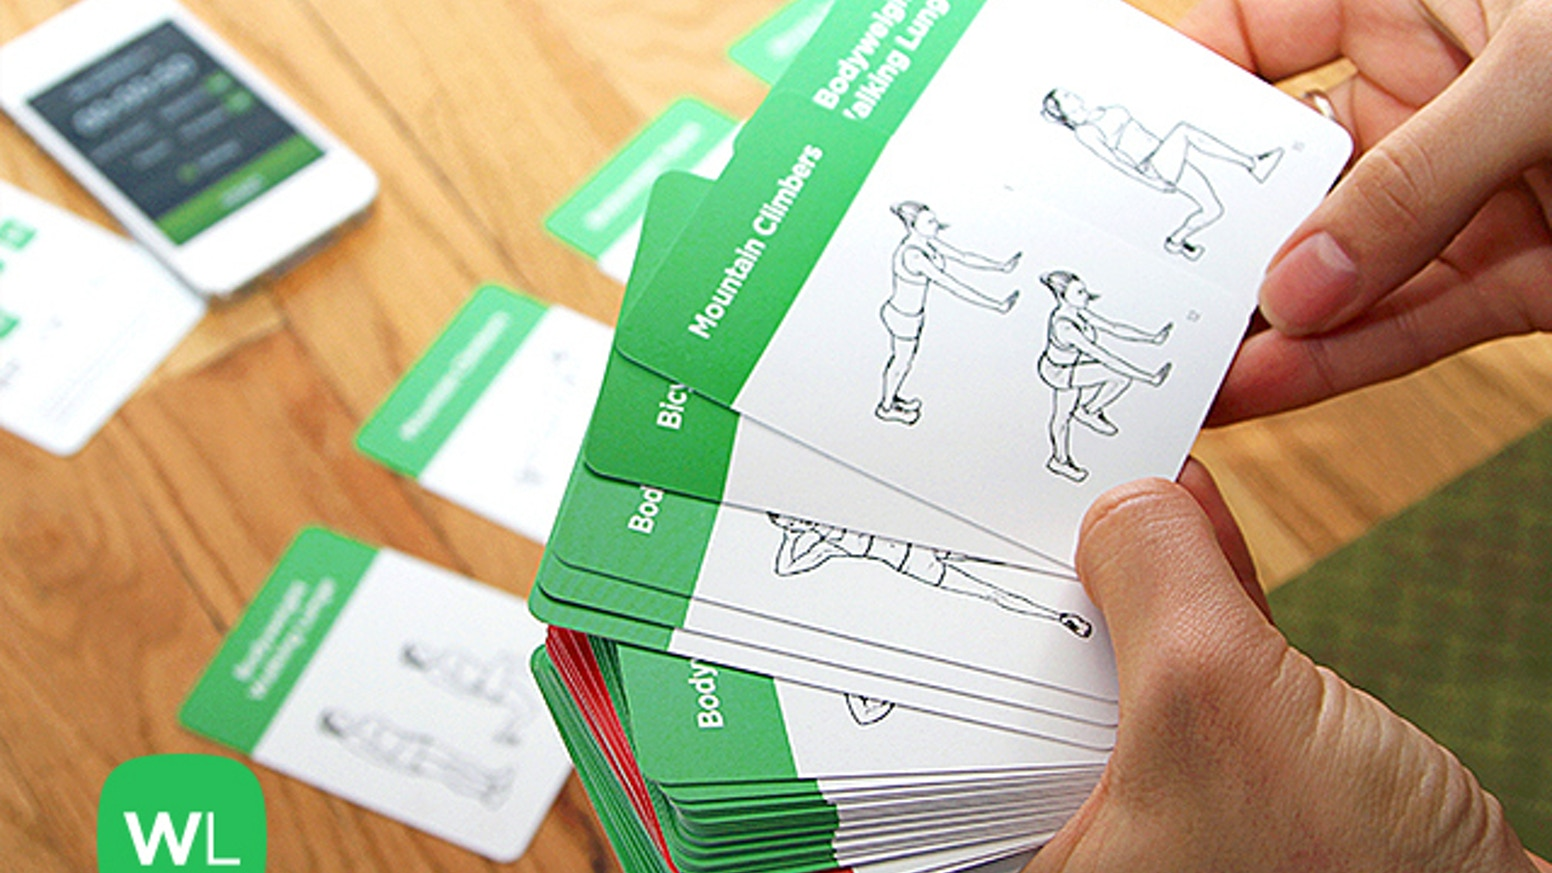 A beautifully-designed plastic cards deck, EXERCISE CARDS is a simple way to work out anywhere and anytime.